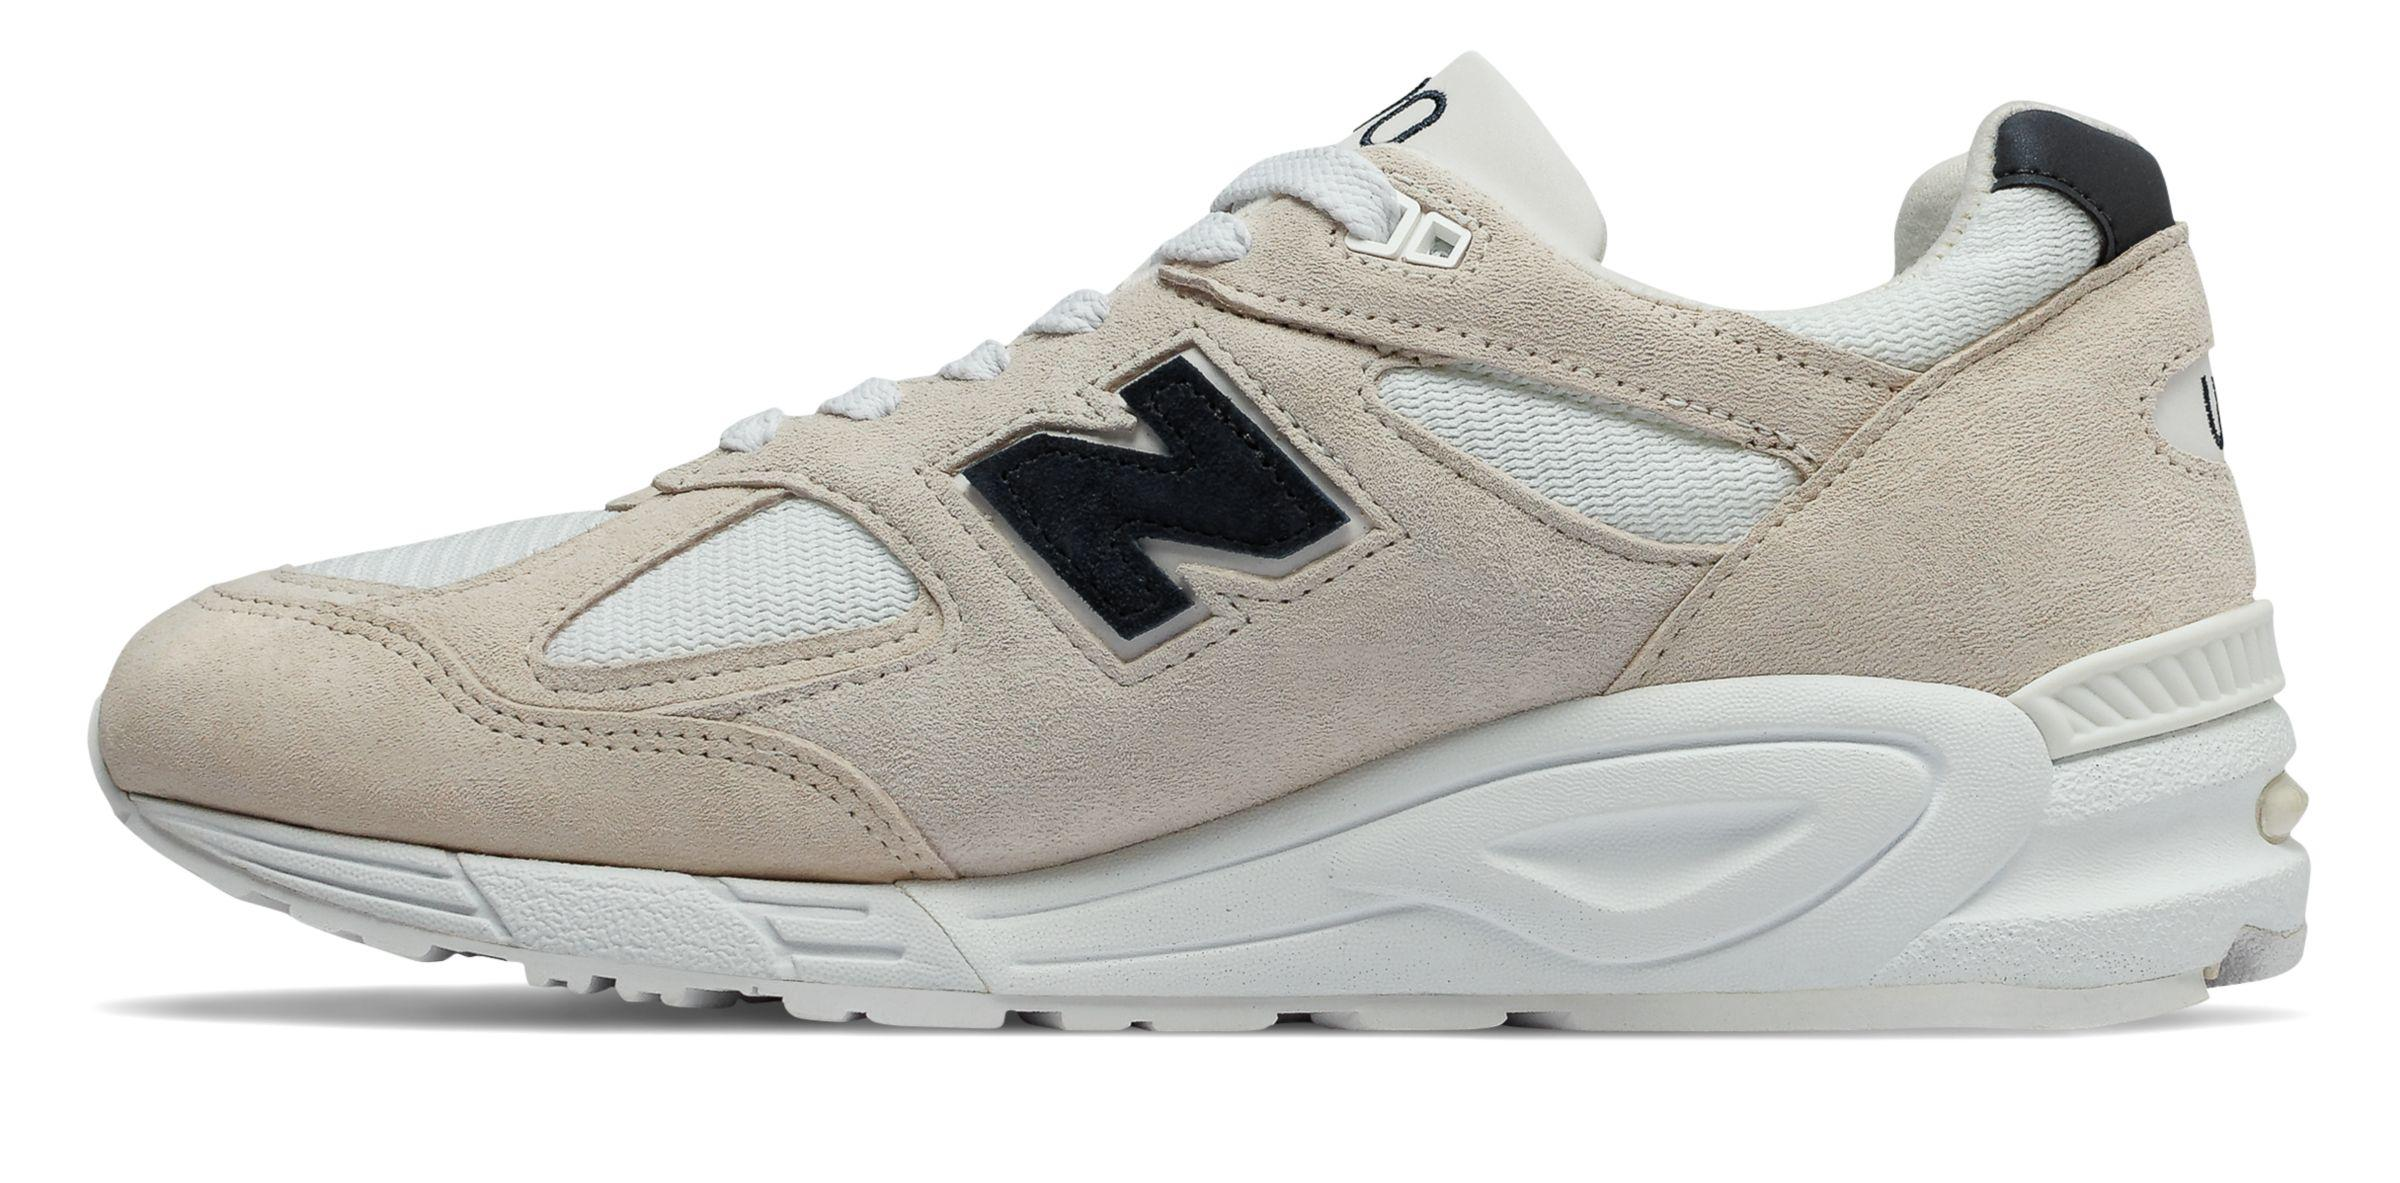 New Balance Suede Made In Us 990v2 in